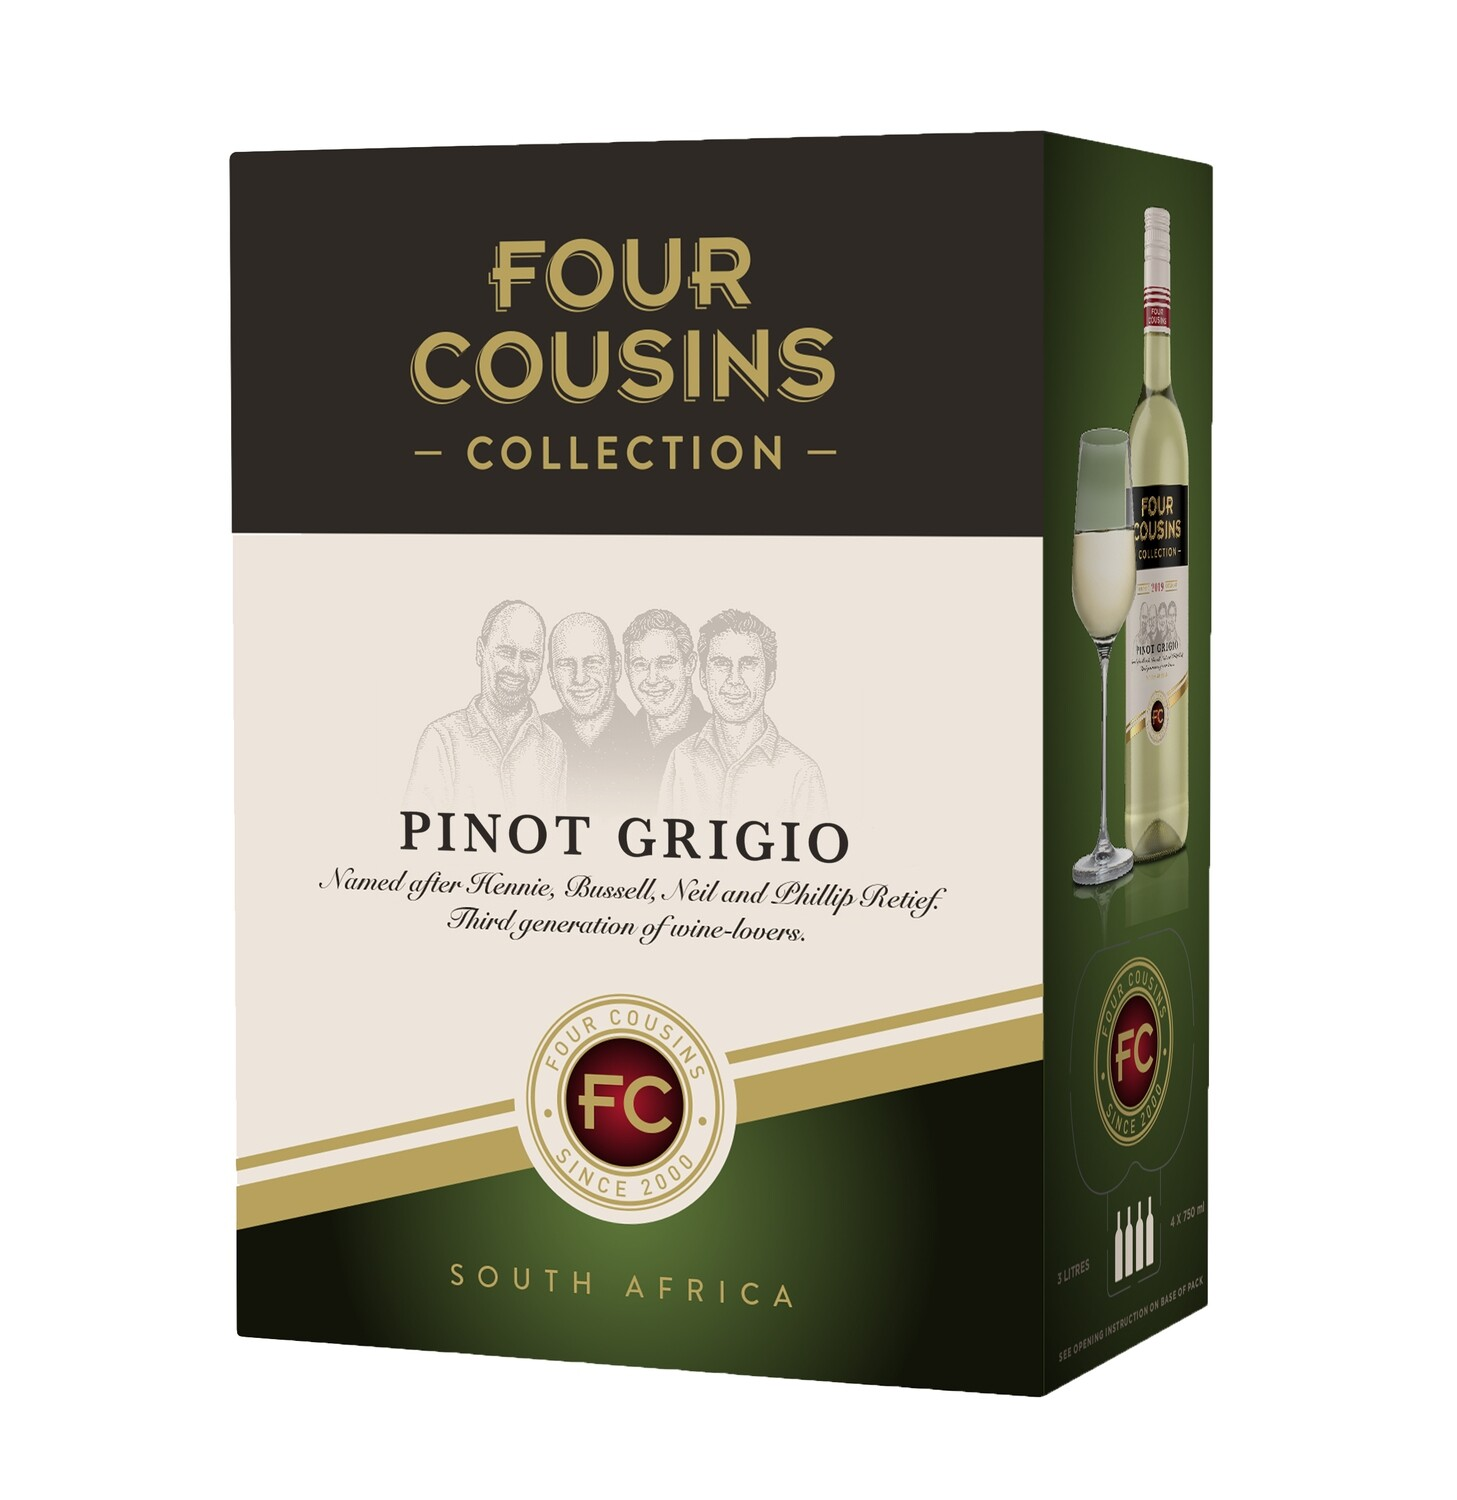 FOUR COUSINS COLLECTION PINOT GRIGIO - 4 x 3L